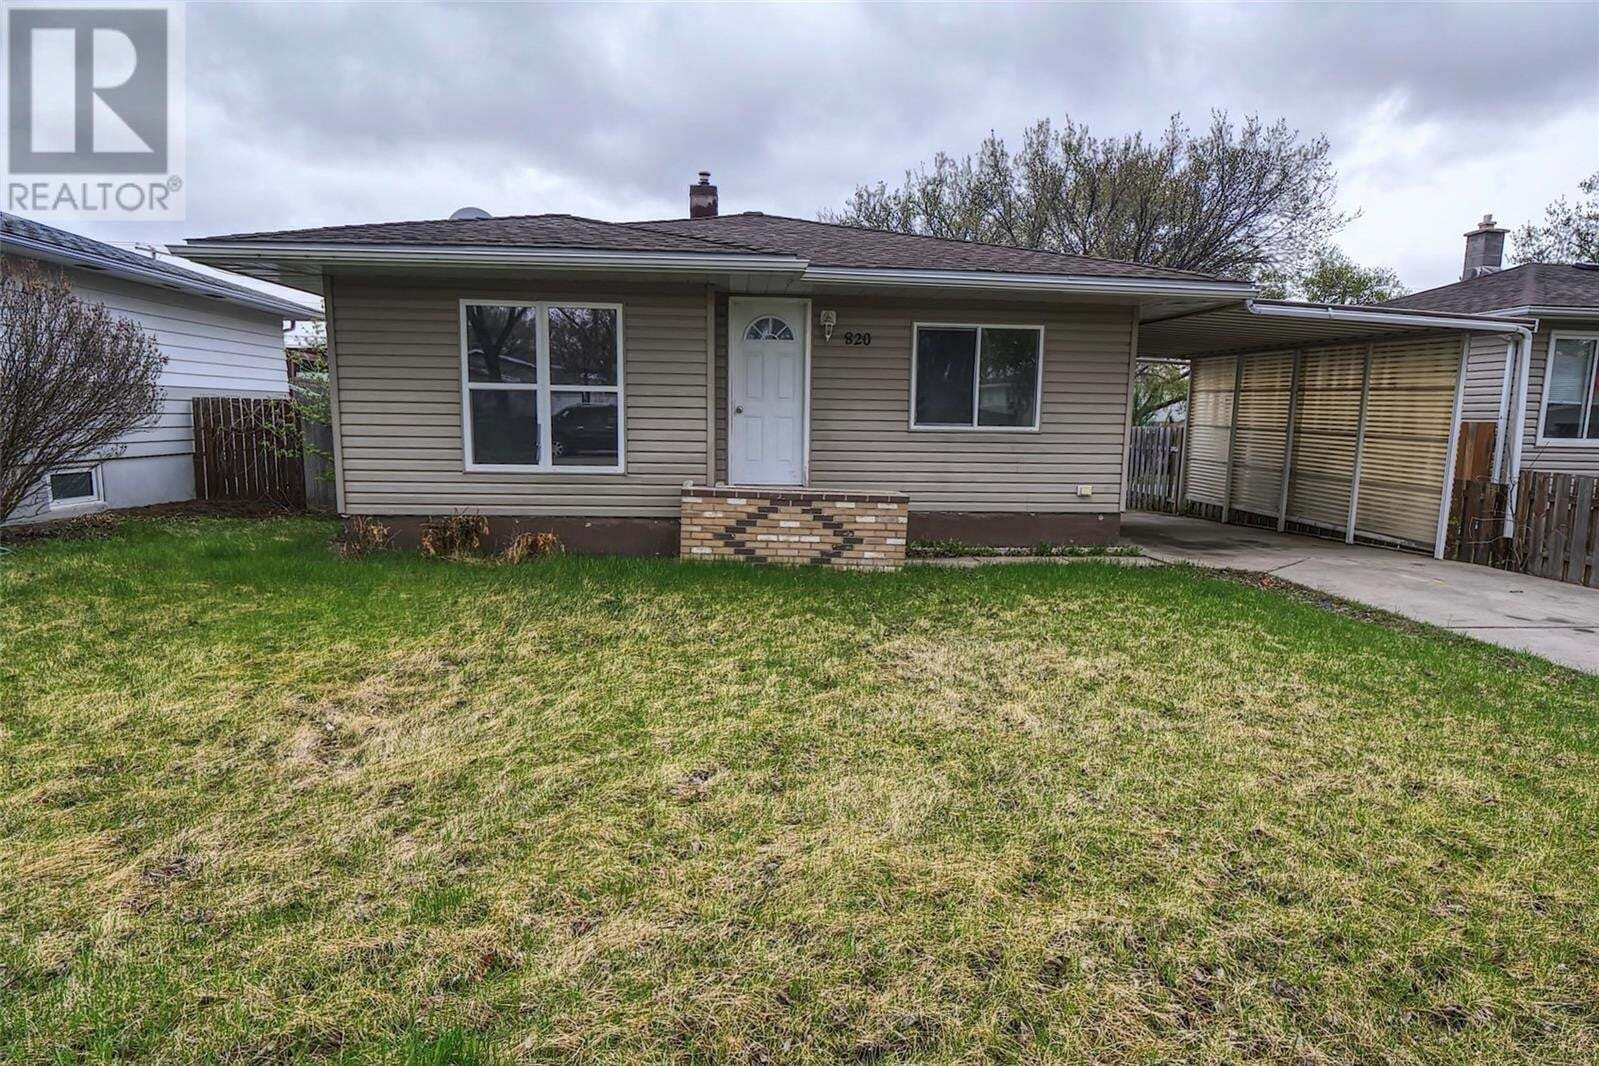 House for sale at 820 Duffield St W Moose Jaw Saskatchewan - MLS: SK810365